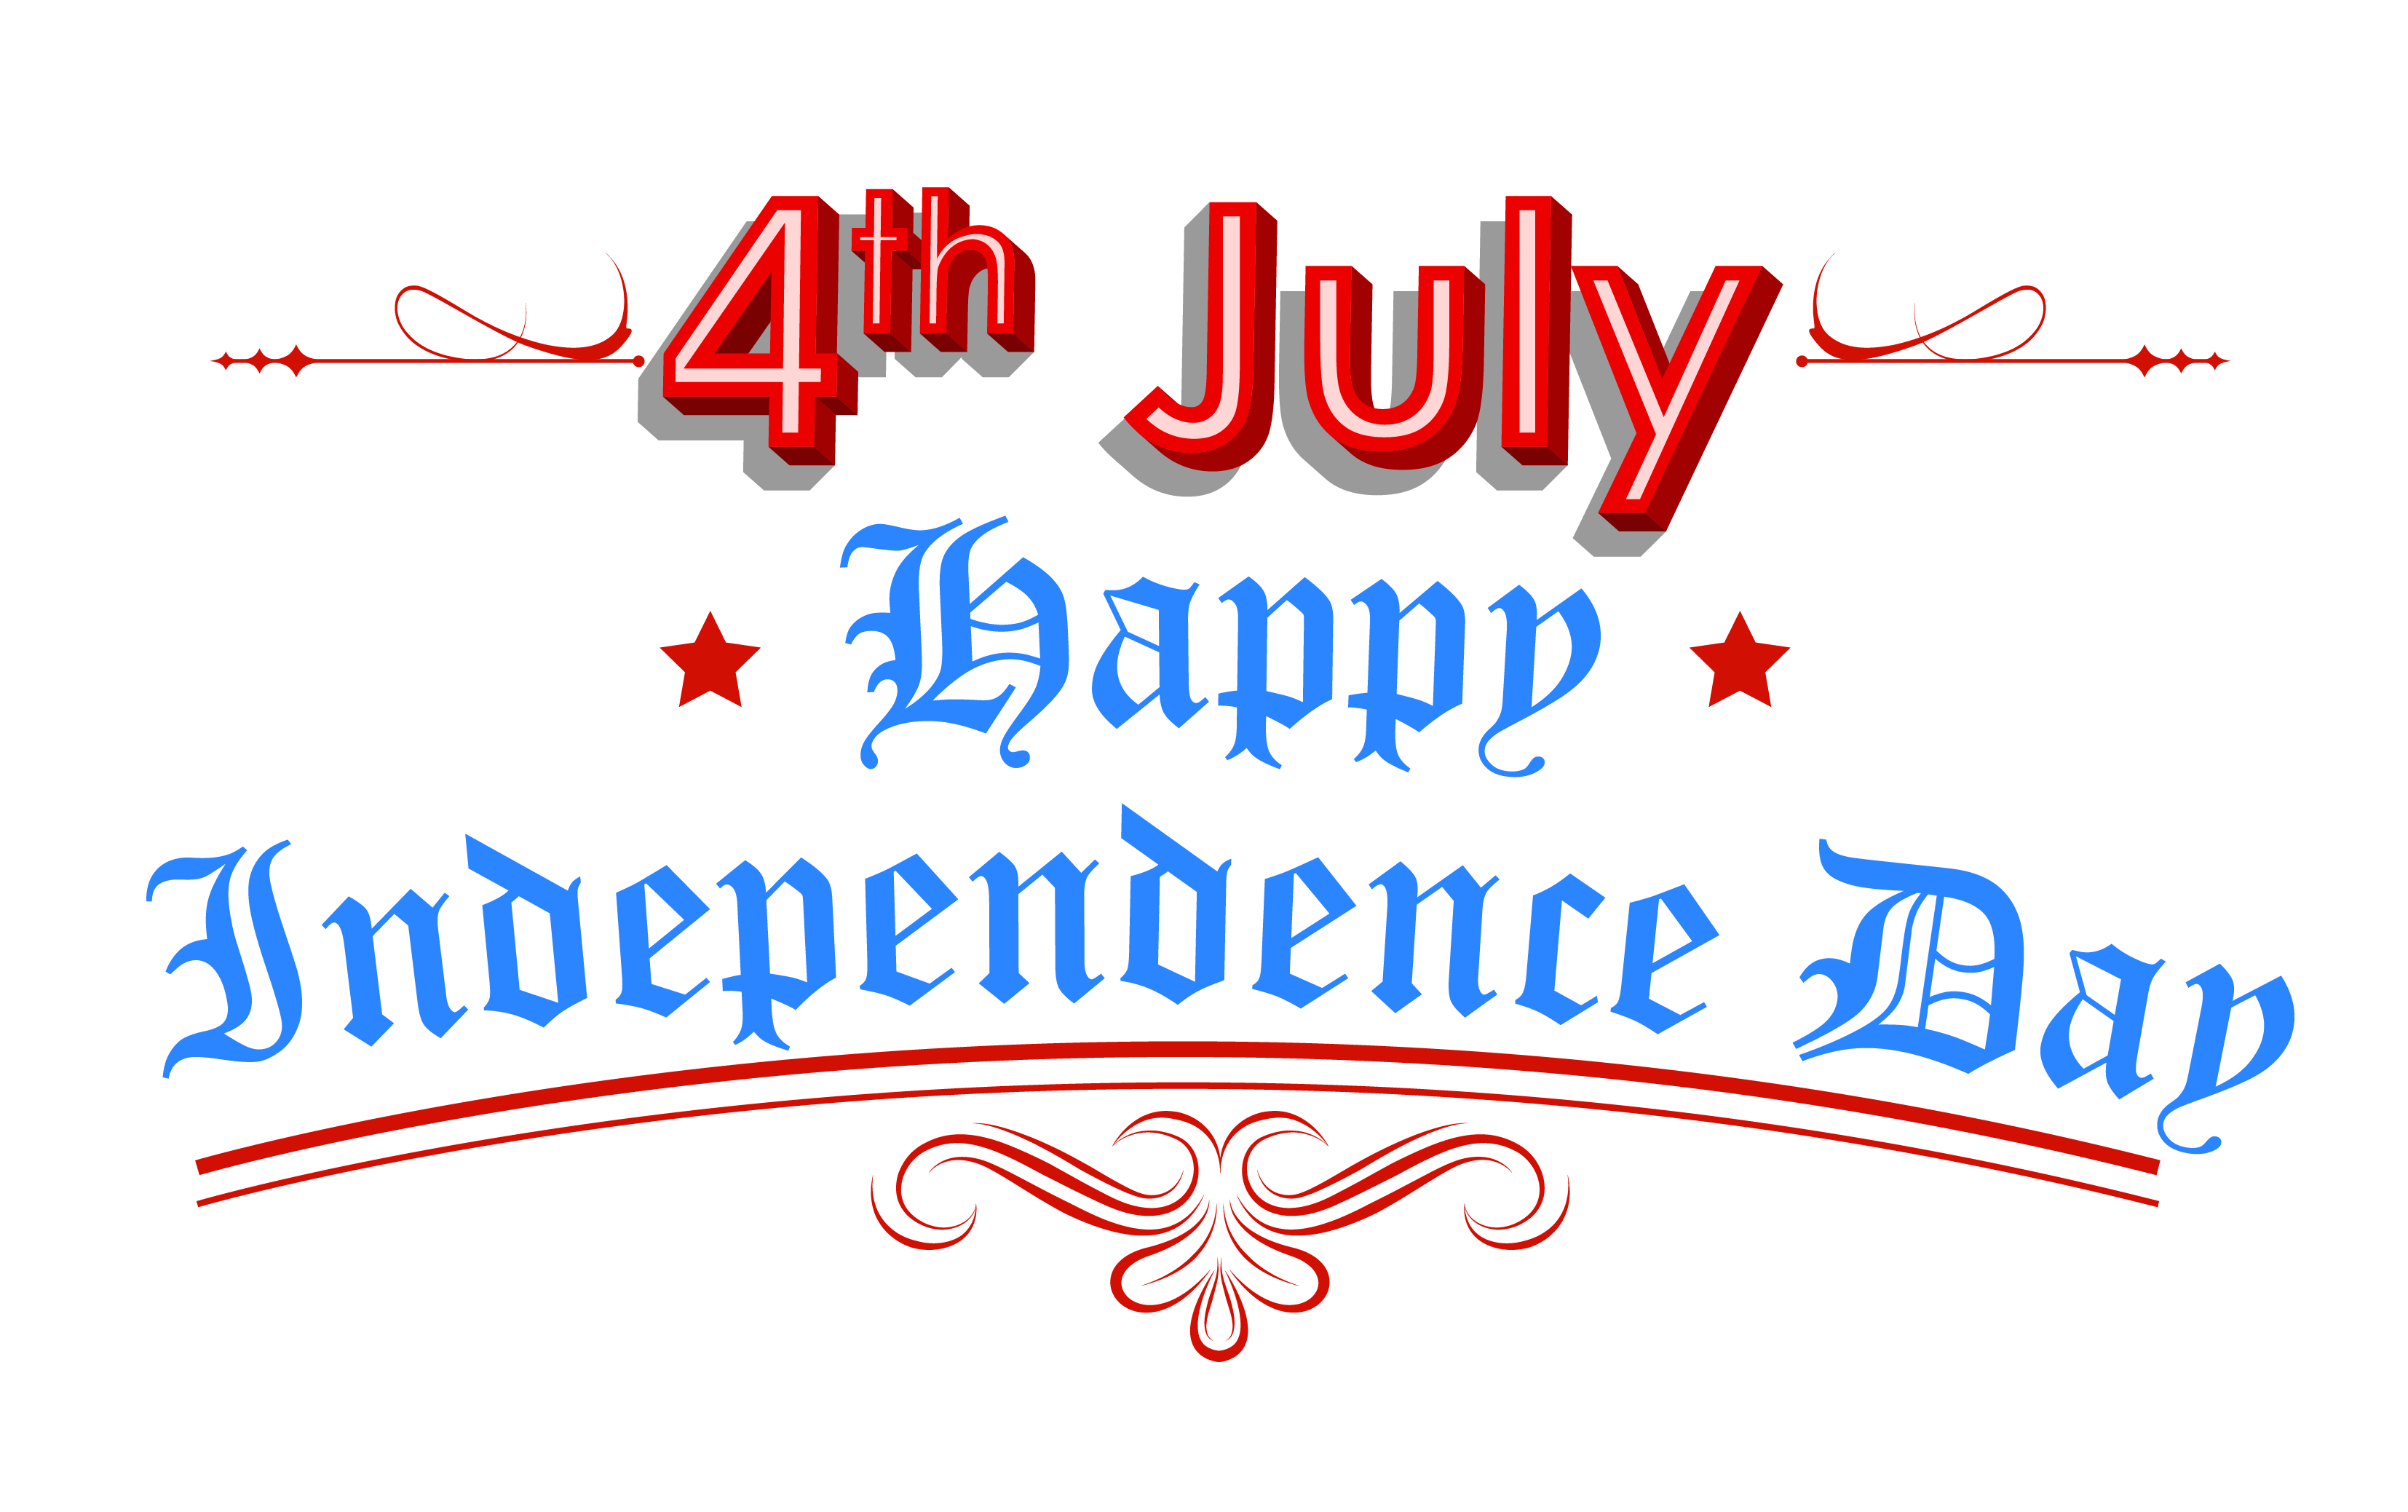 Festival clipart independence day Of images Of july fourth